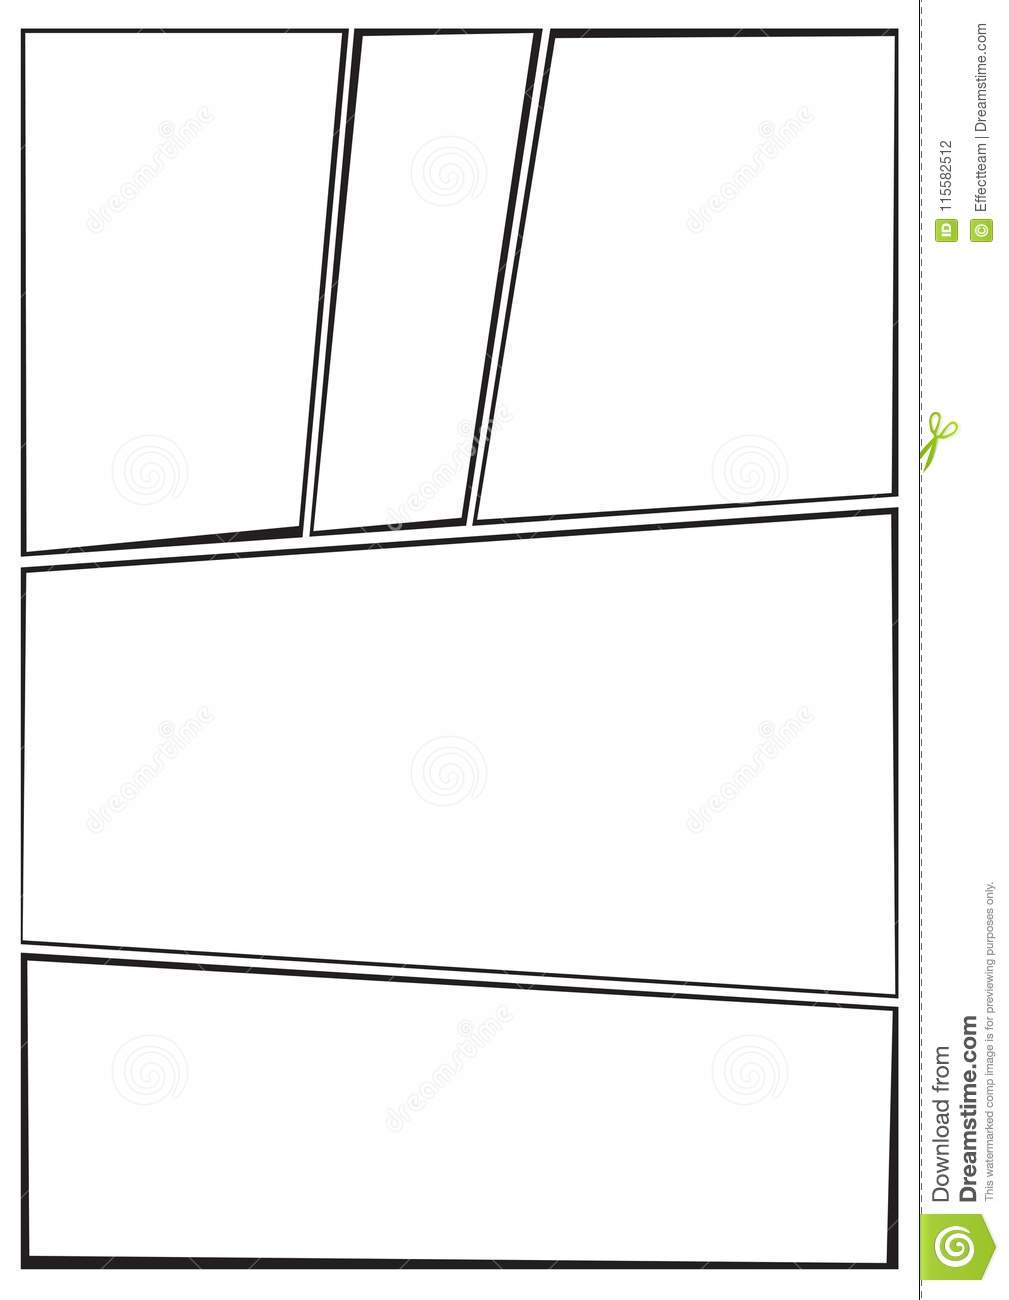 Manga drawing template image collections template design for Free antennas com projects template